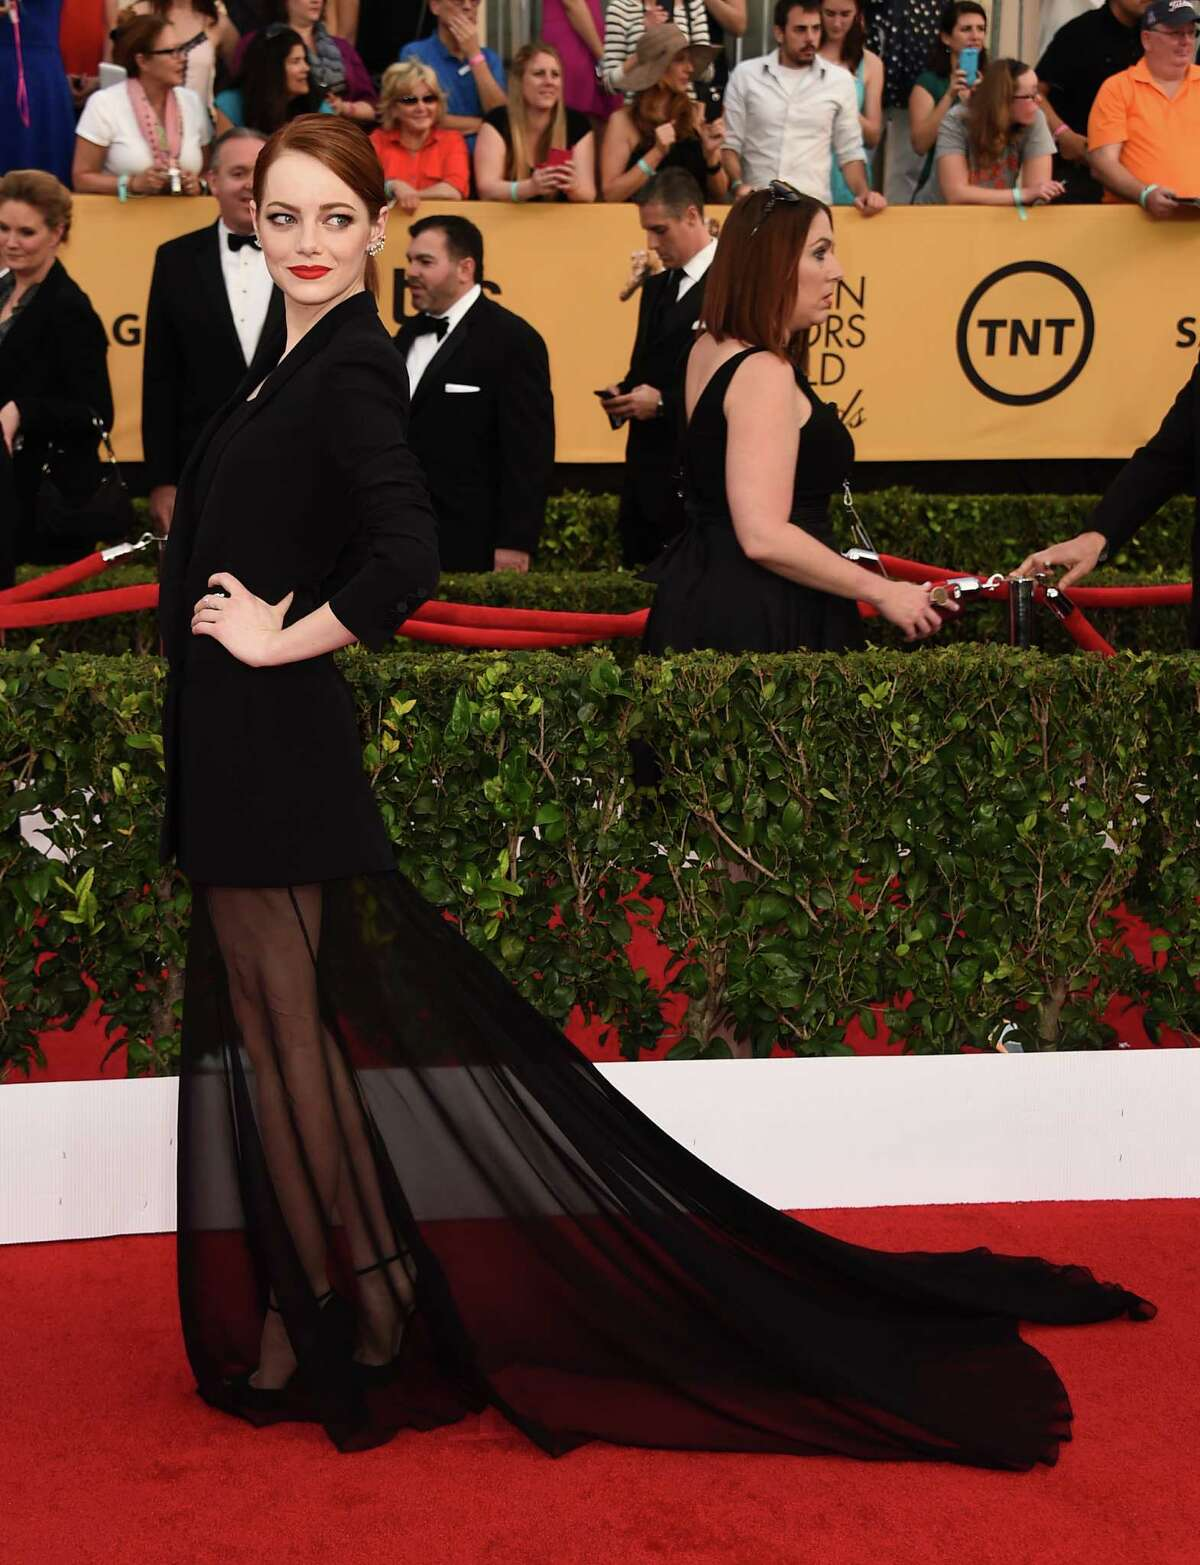 Worst: Emma Stone This looks like she stole a suit jacket from her grandpa and curtain from her grandmother.